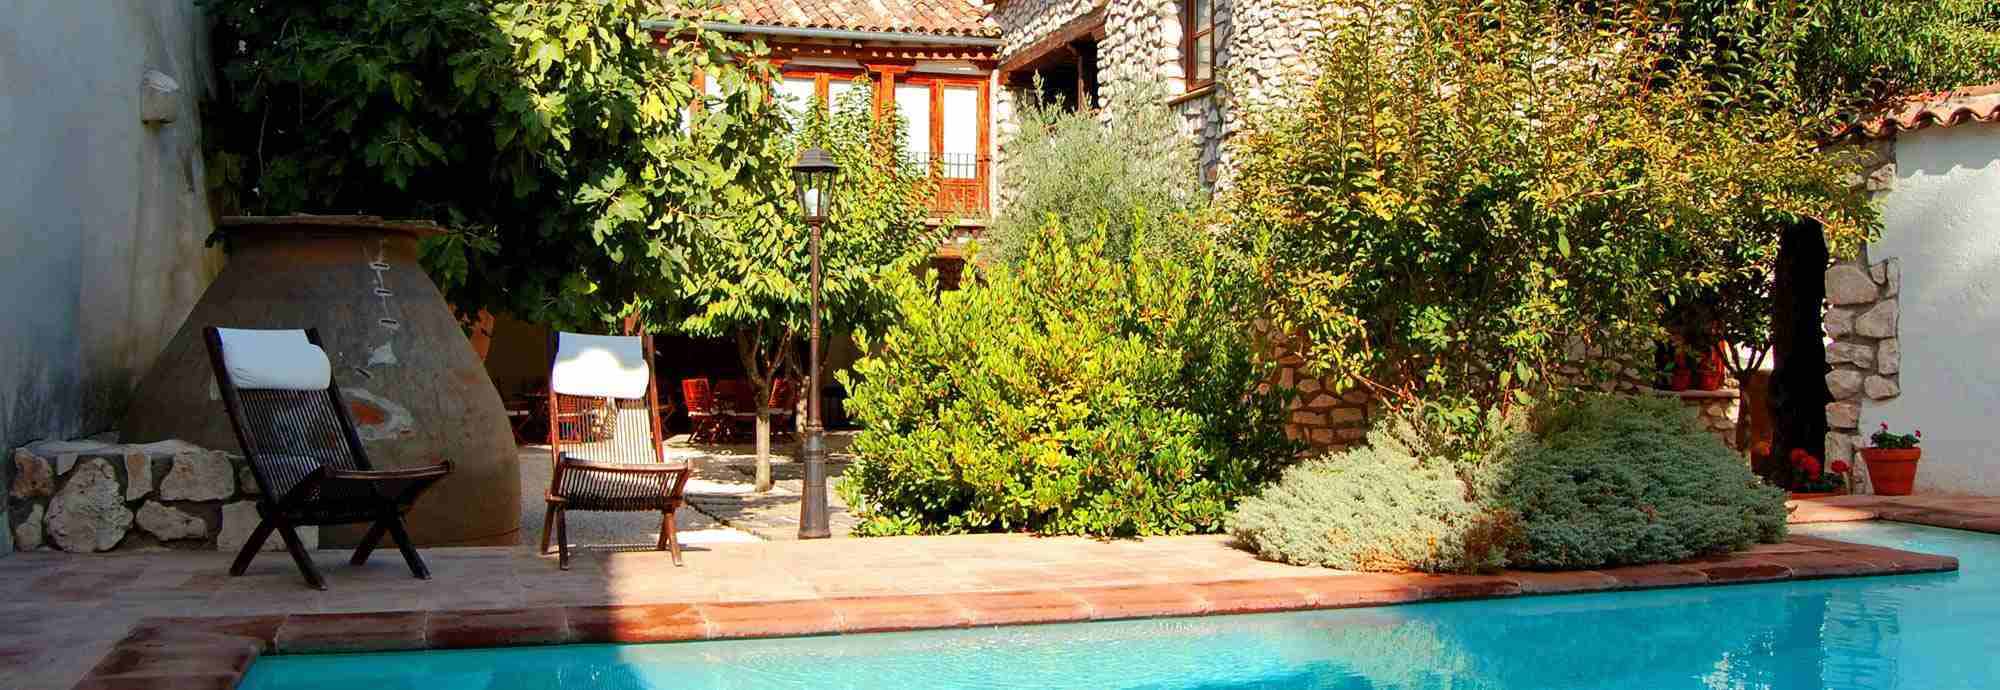 Large luxury villa rental with pool in Madrid, Spain